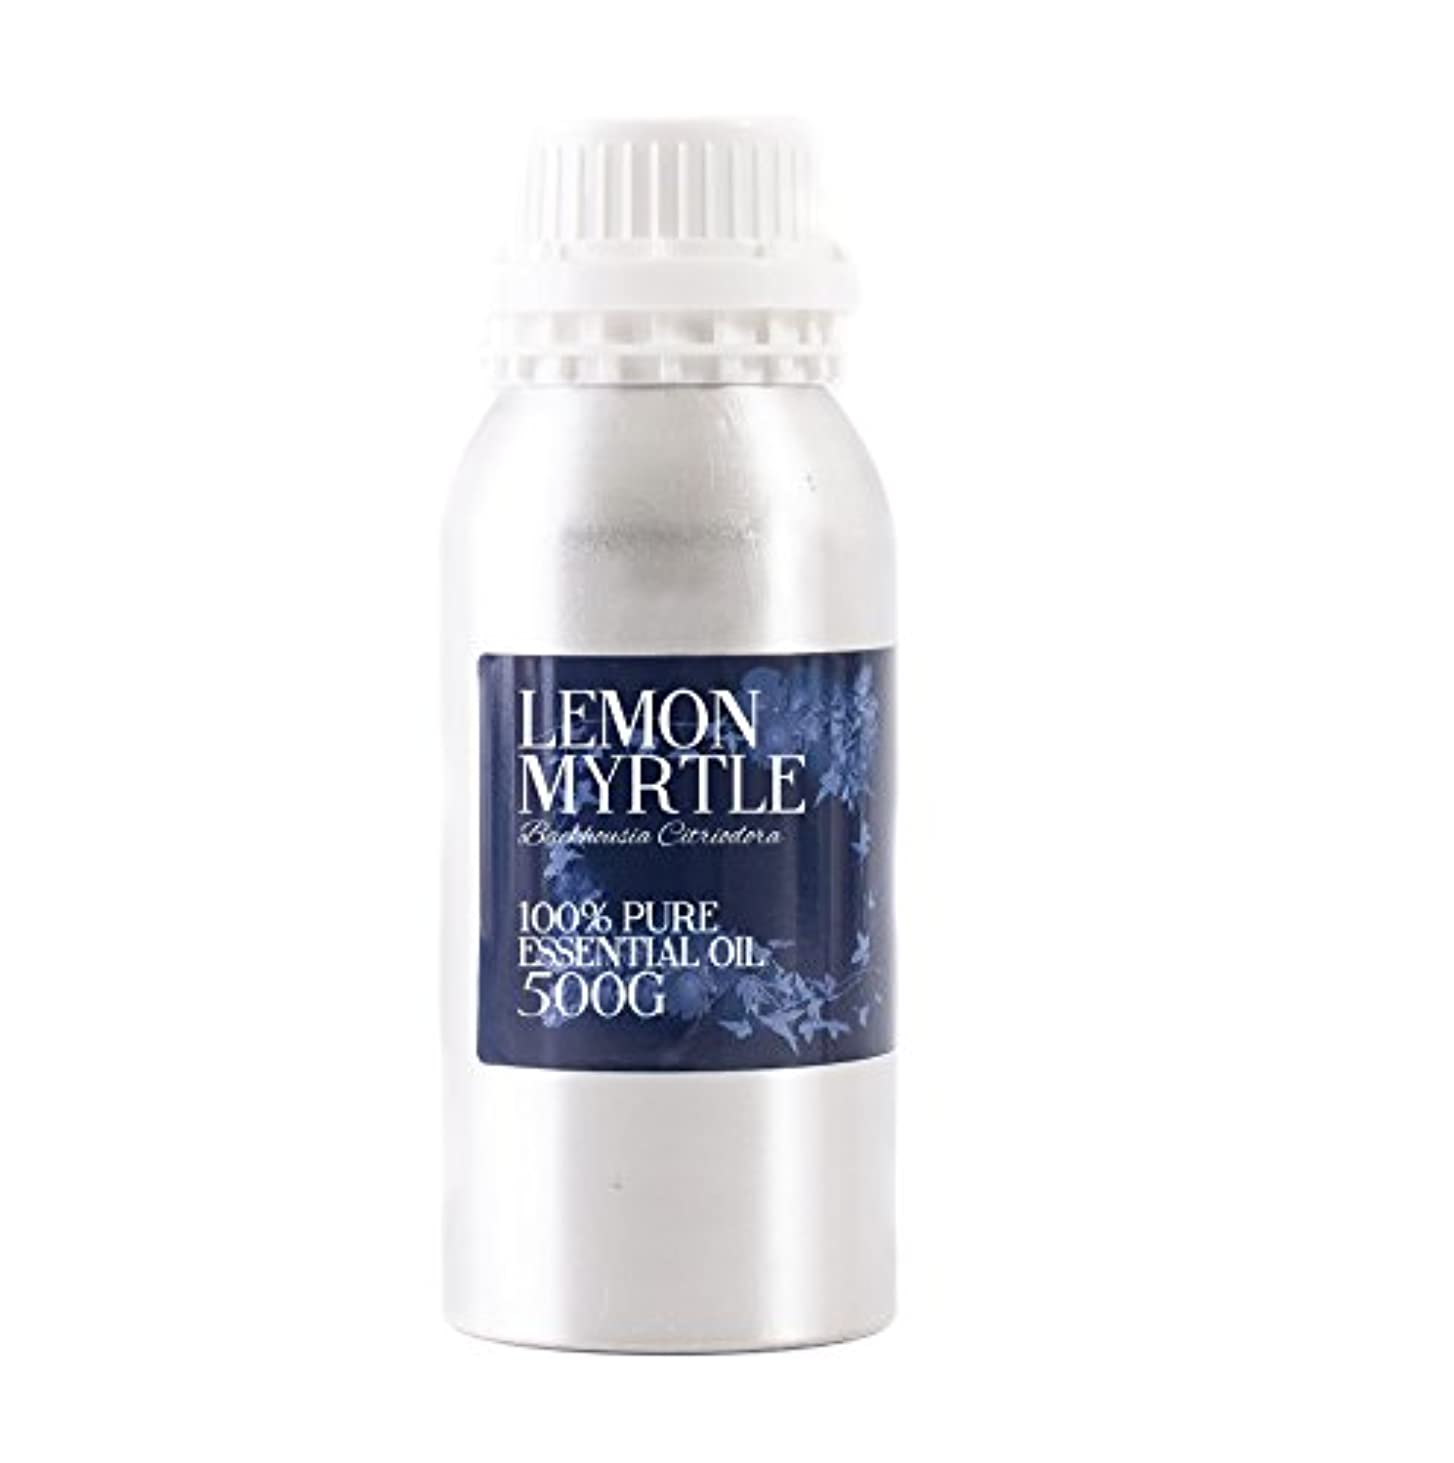 飽和するスタウトチートMystic Moments | Lemon Myrtle Essential Oil - 500g - 100% Pure